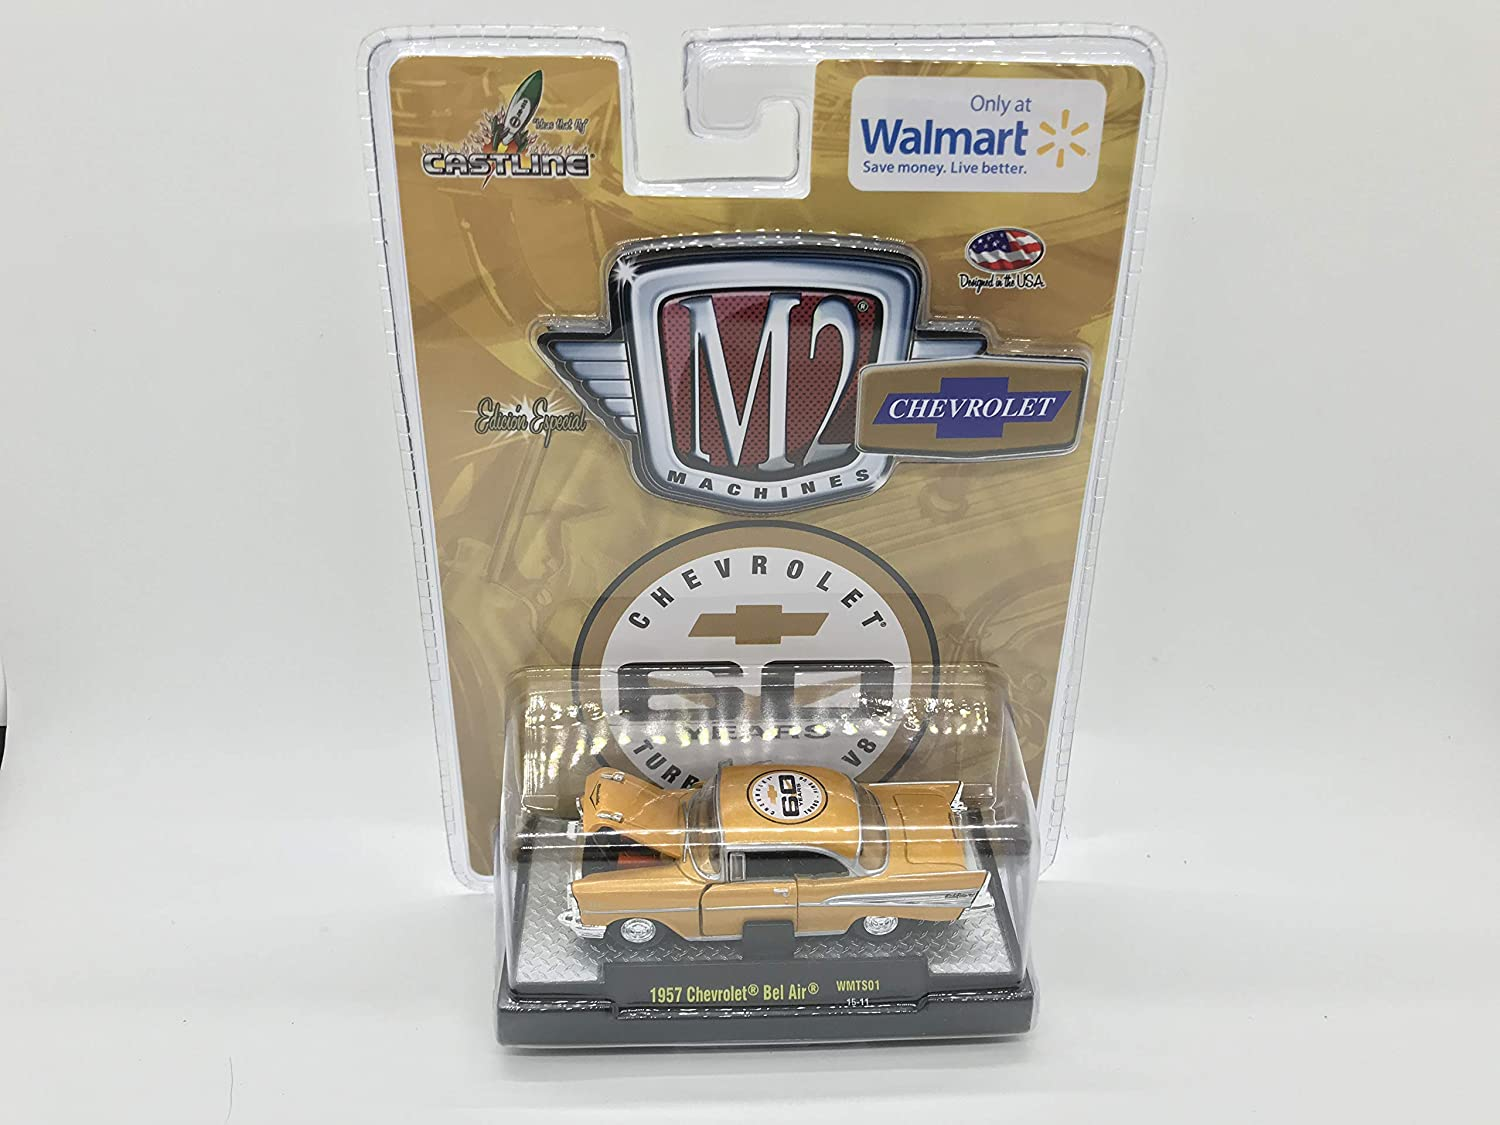 M2 Machines by M2 Collectible Chevy 60 Years Turbo Fire V8 1957 Bel Air WMTS01 15-11 Yellow Details Like NO Other!